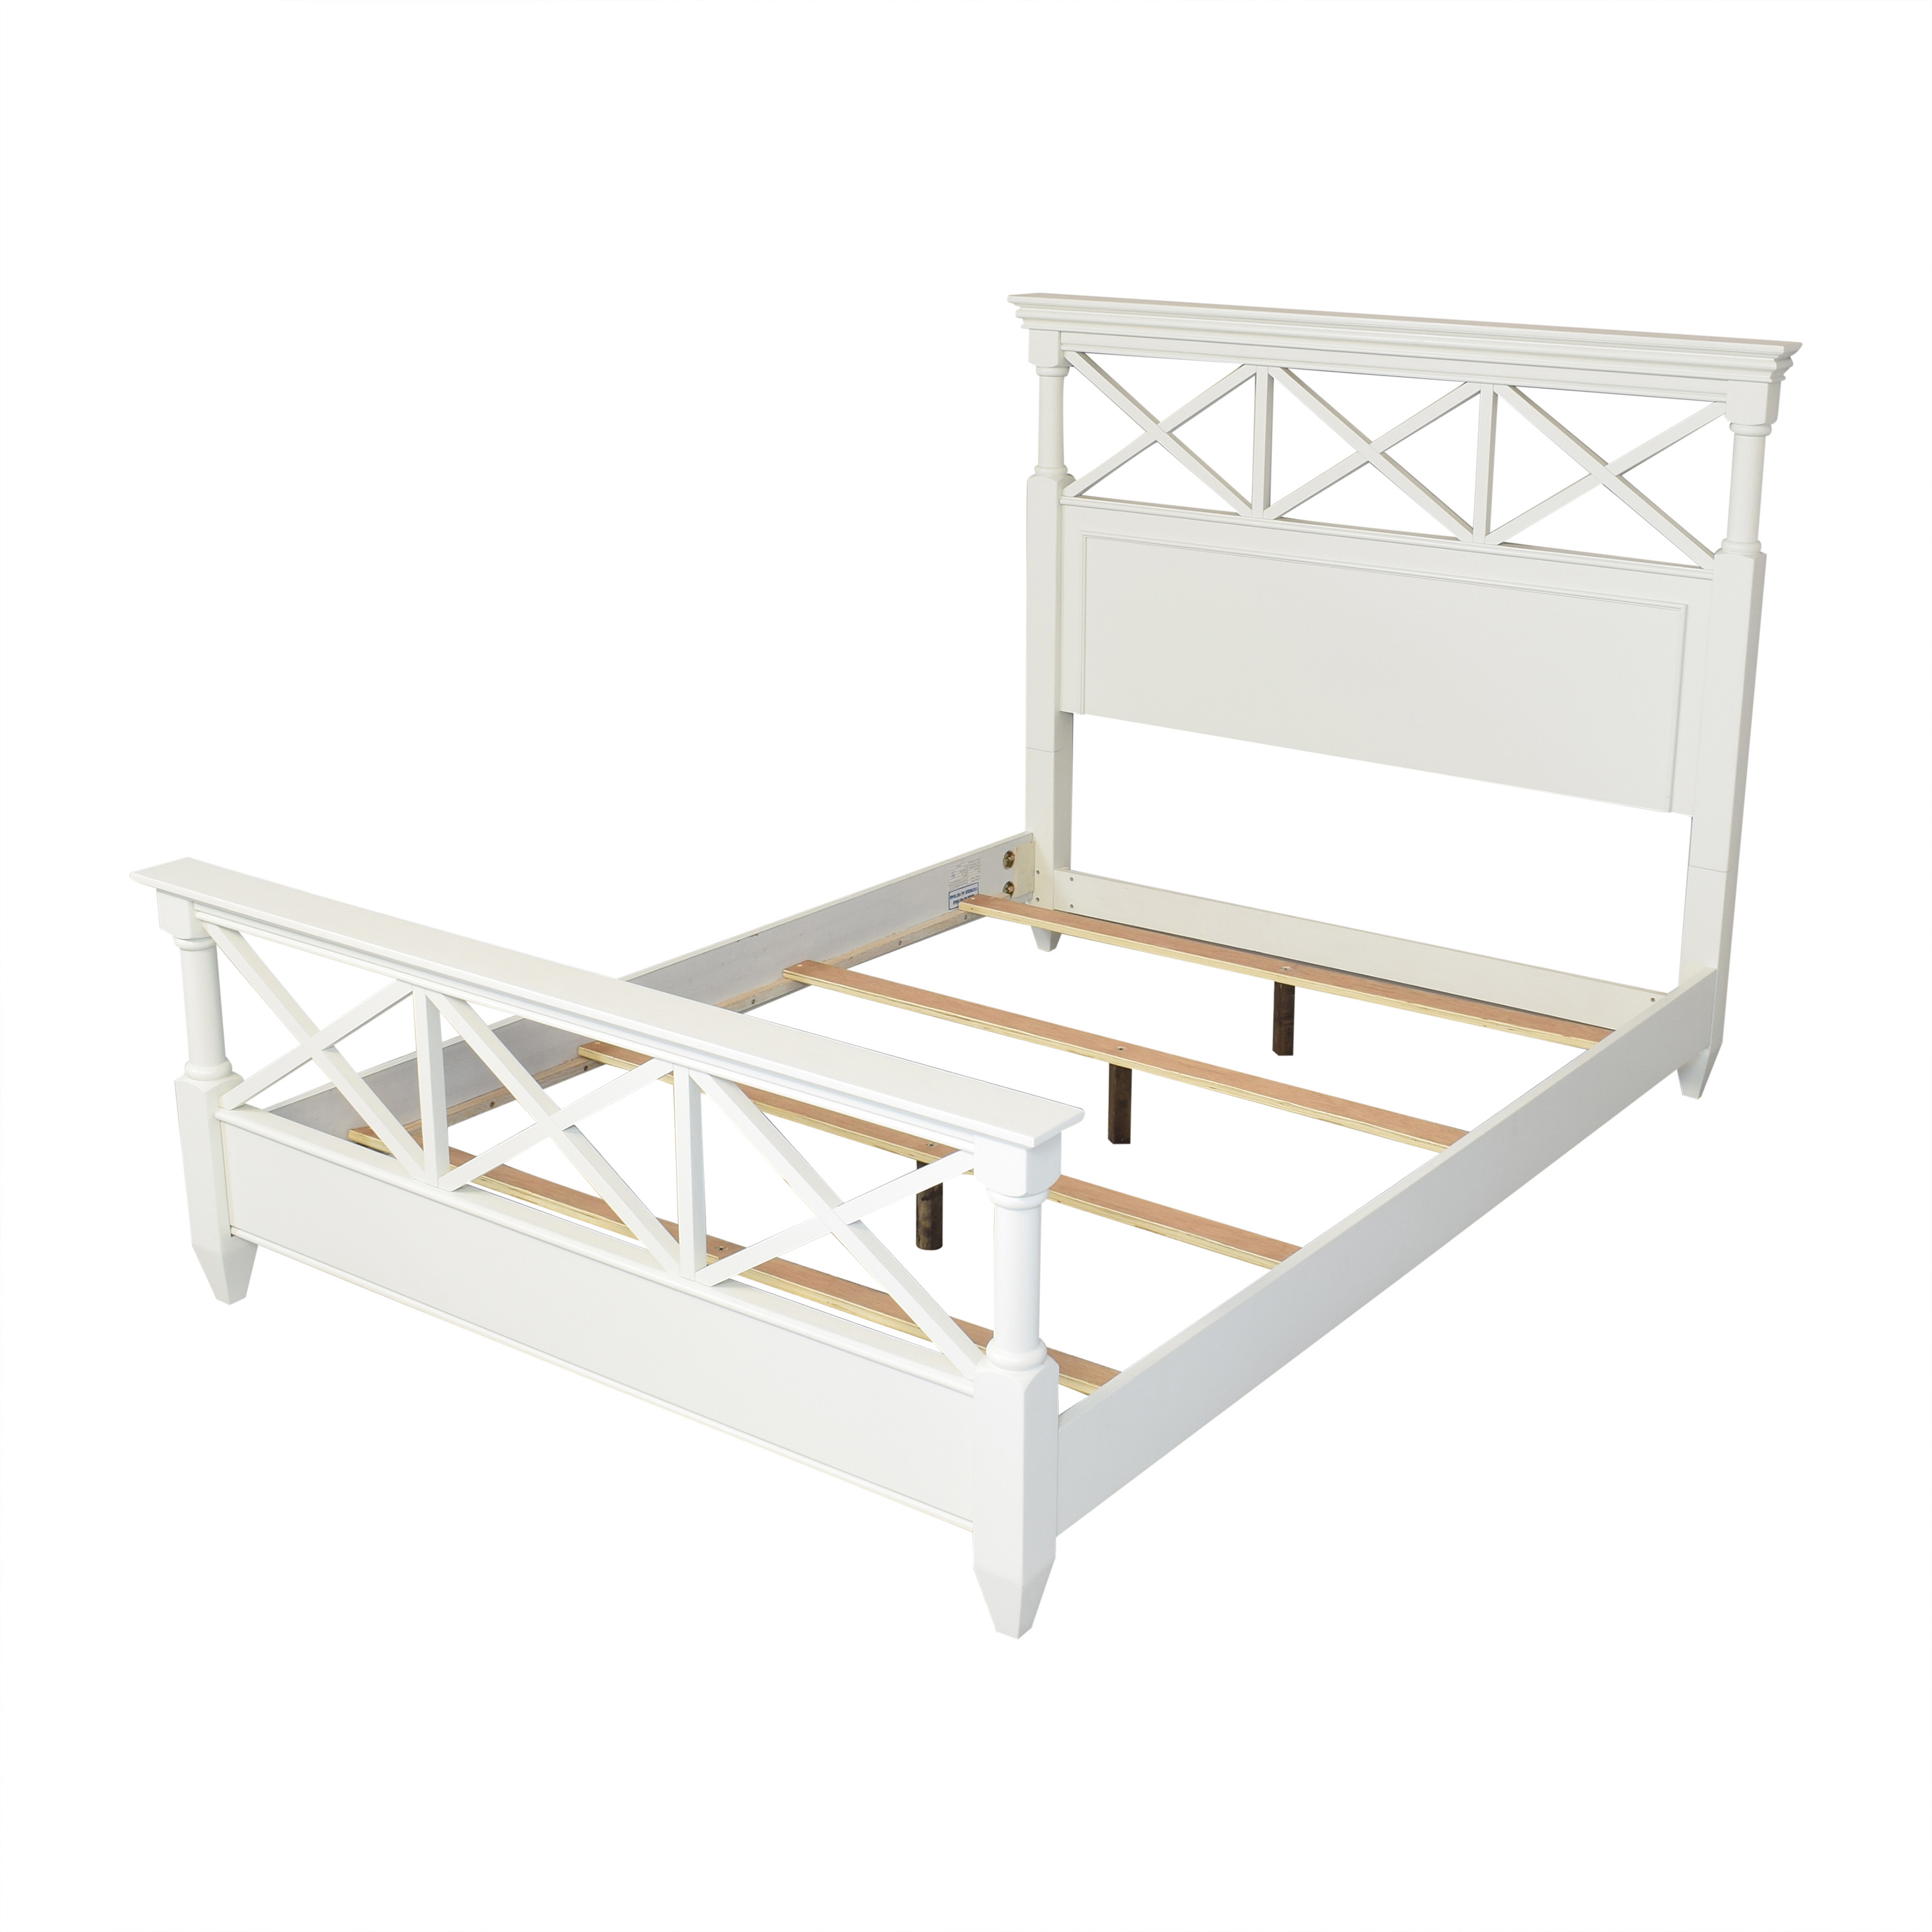 Raymour & Flanigan Raymour & Flanigan Retreat Queen Bed discount